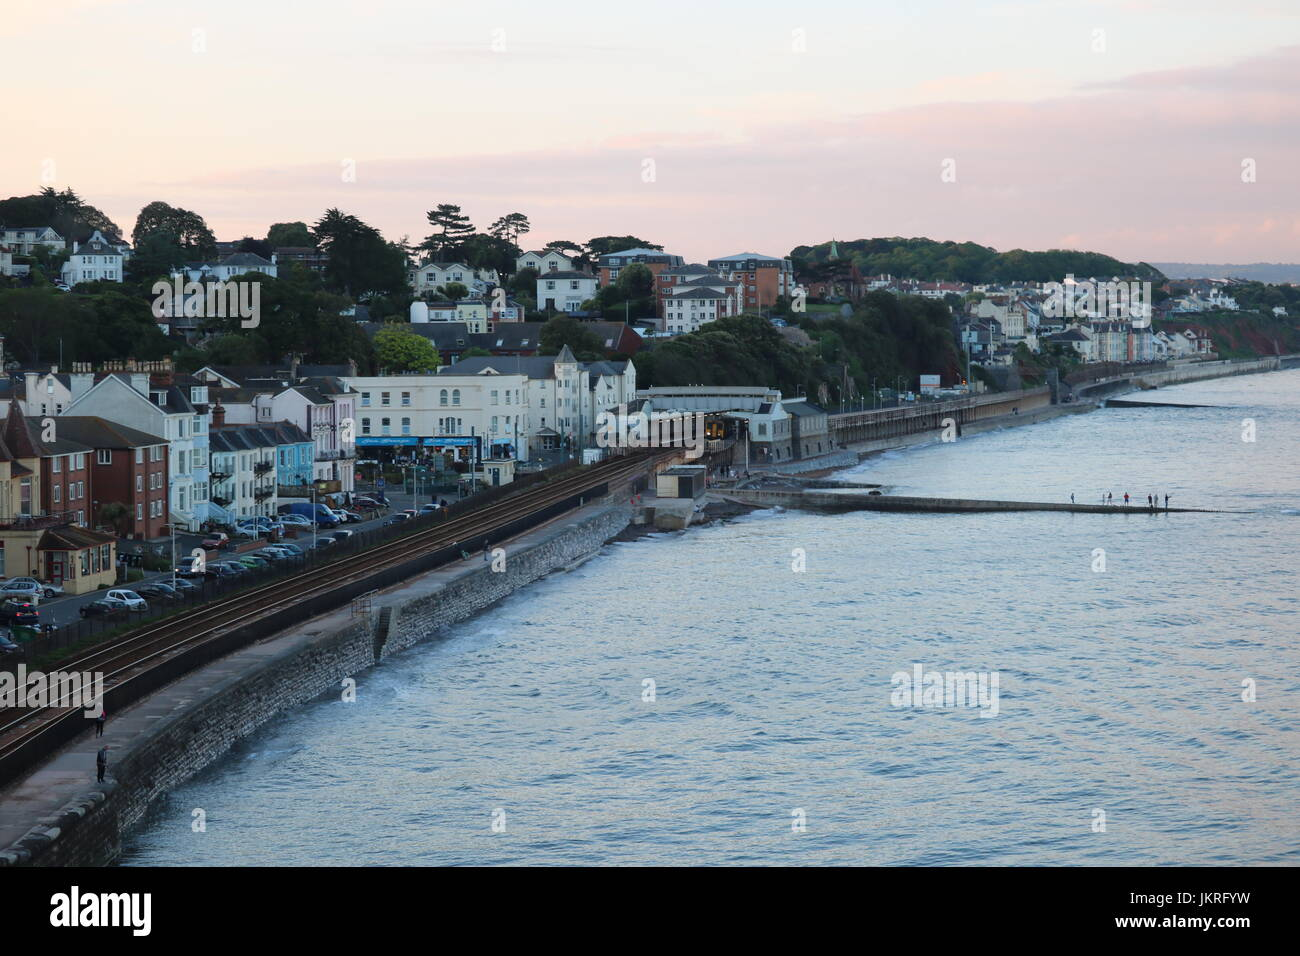 Sunset in Dawlish, UK overlooking the town Stock Photo